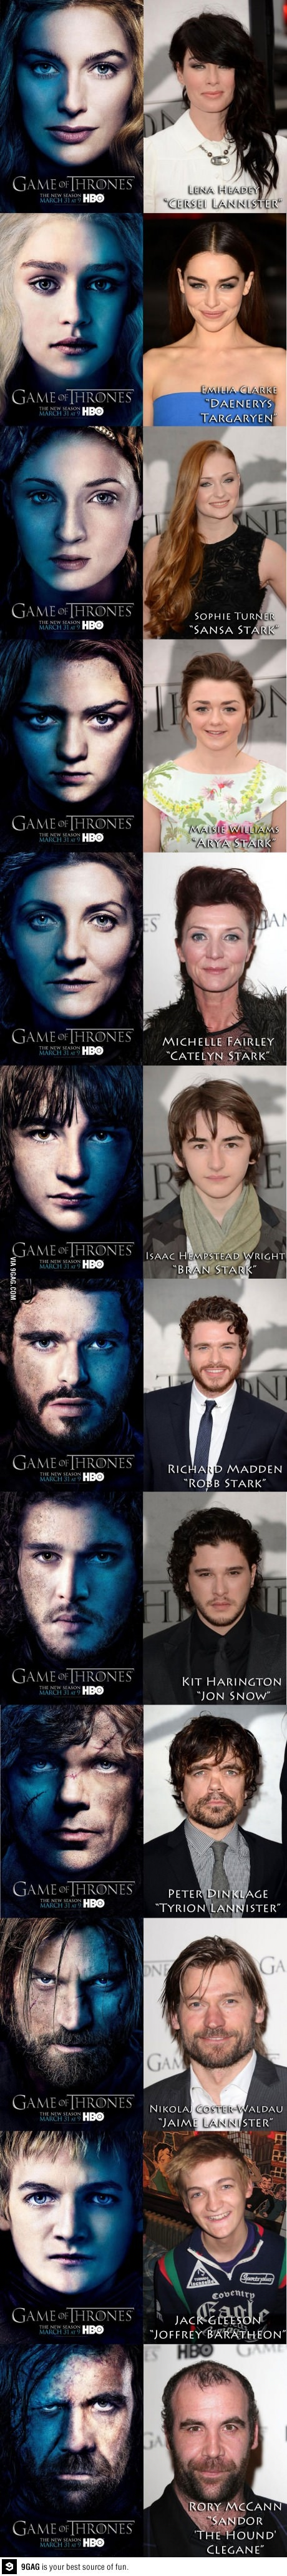 When you play a game of thrones you win or you die